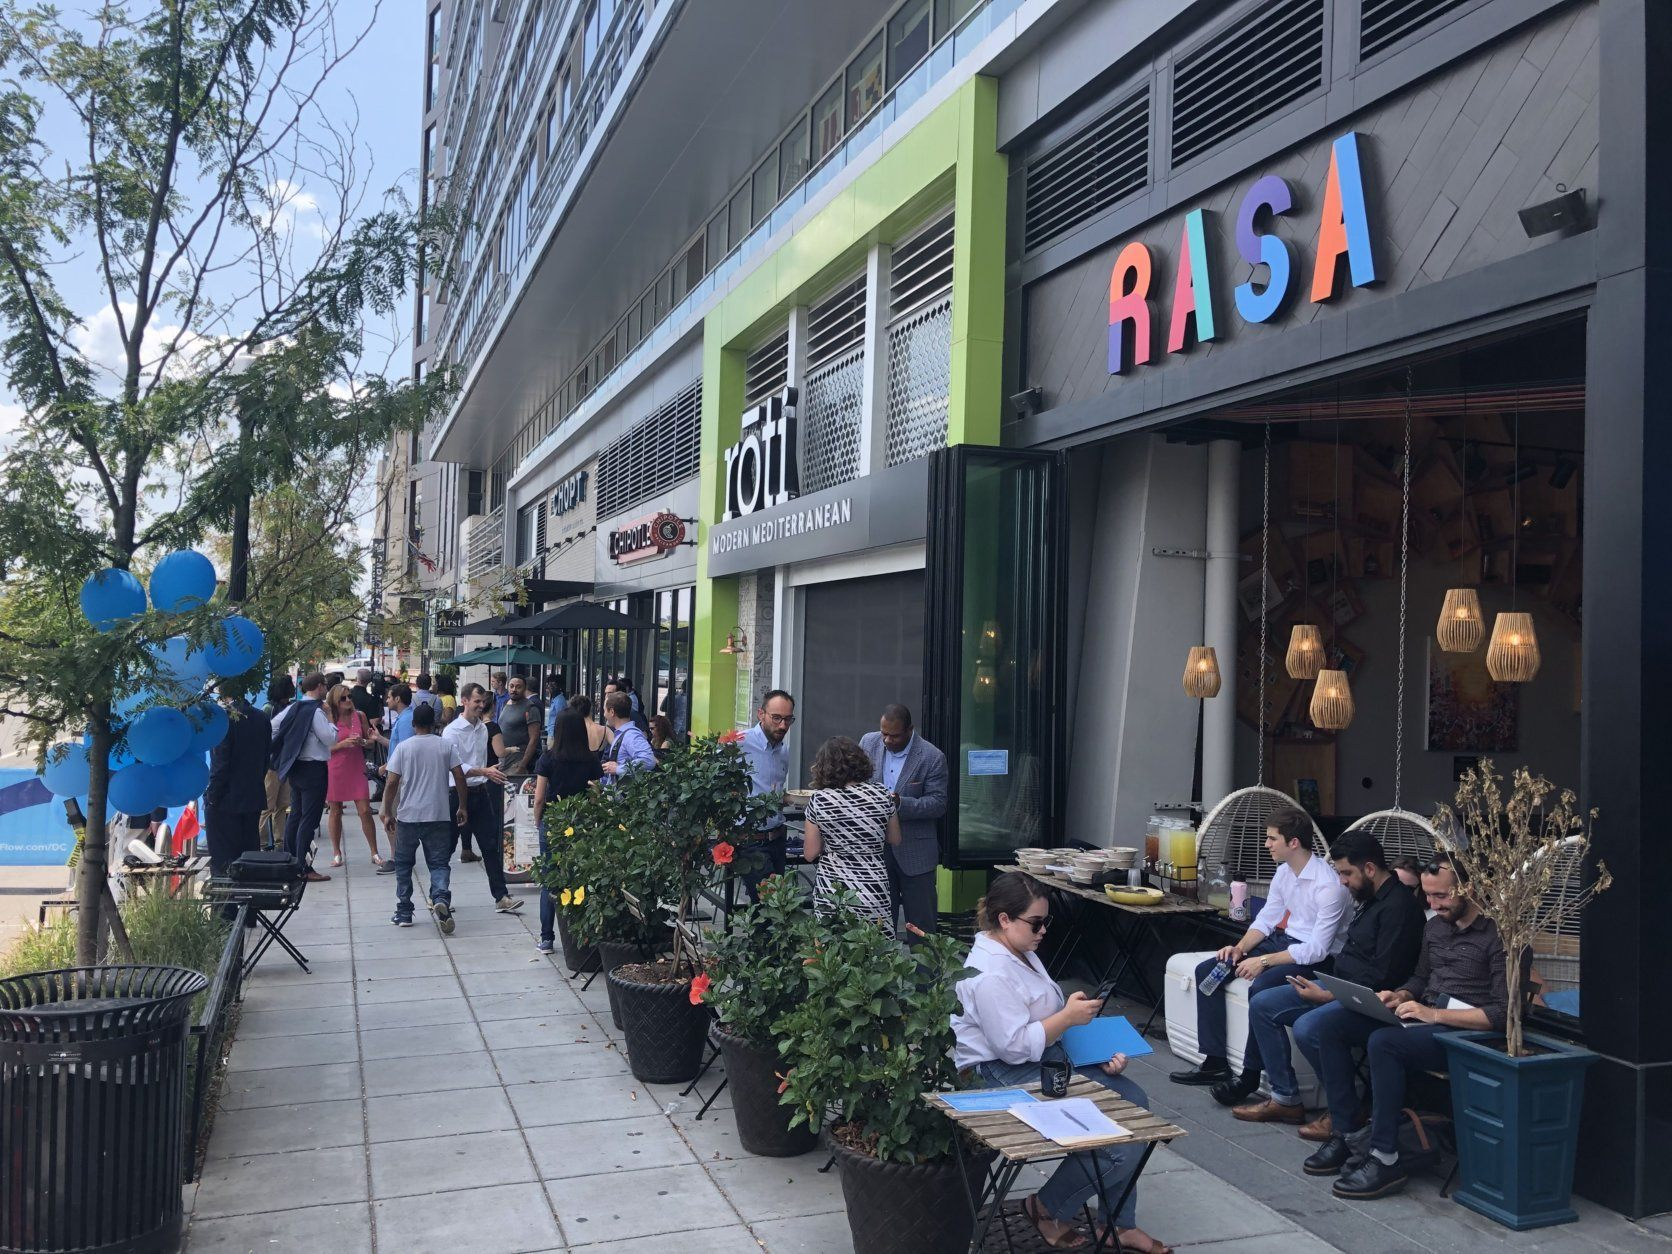 Thursday's announcement and ribbon cutting was along a busy restaurant and fast casual food area near Nationals Park on First Street, just south of M Street, in Southeast. (WTOP/Kristi King)